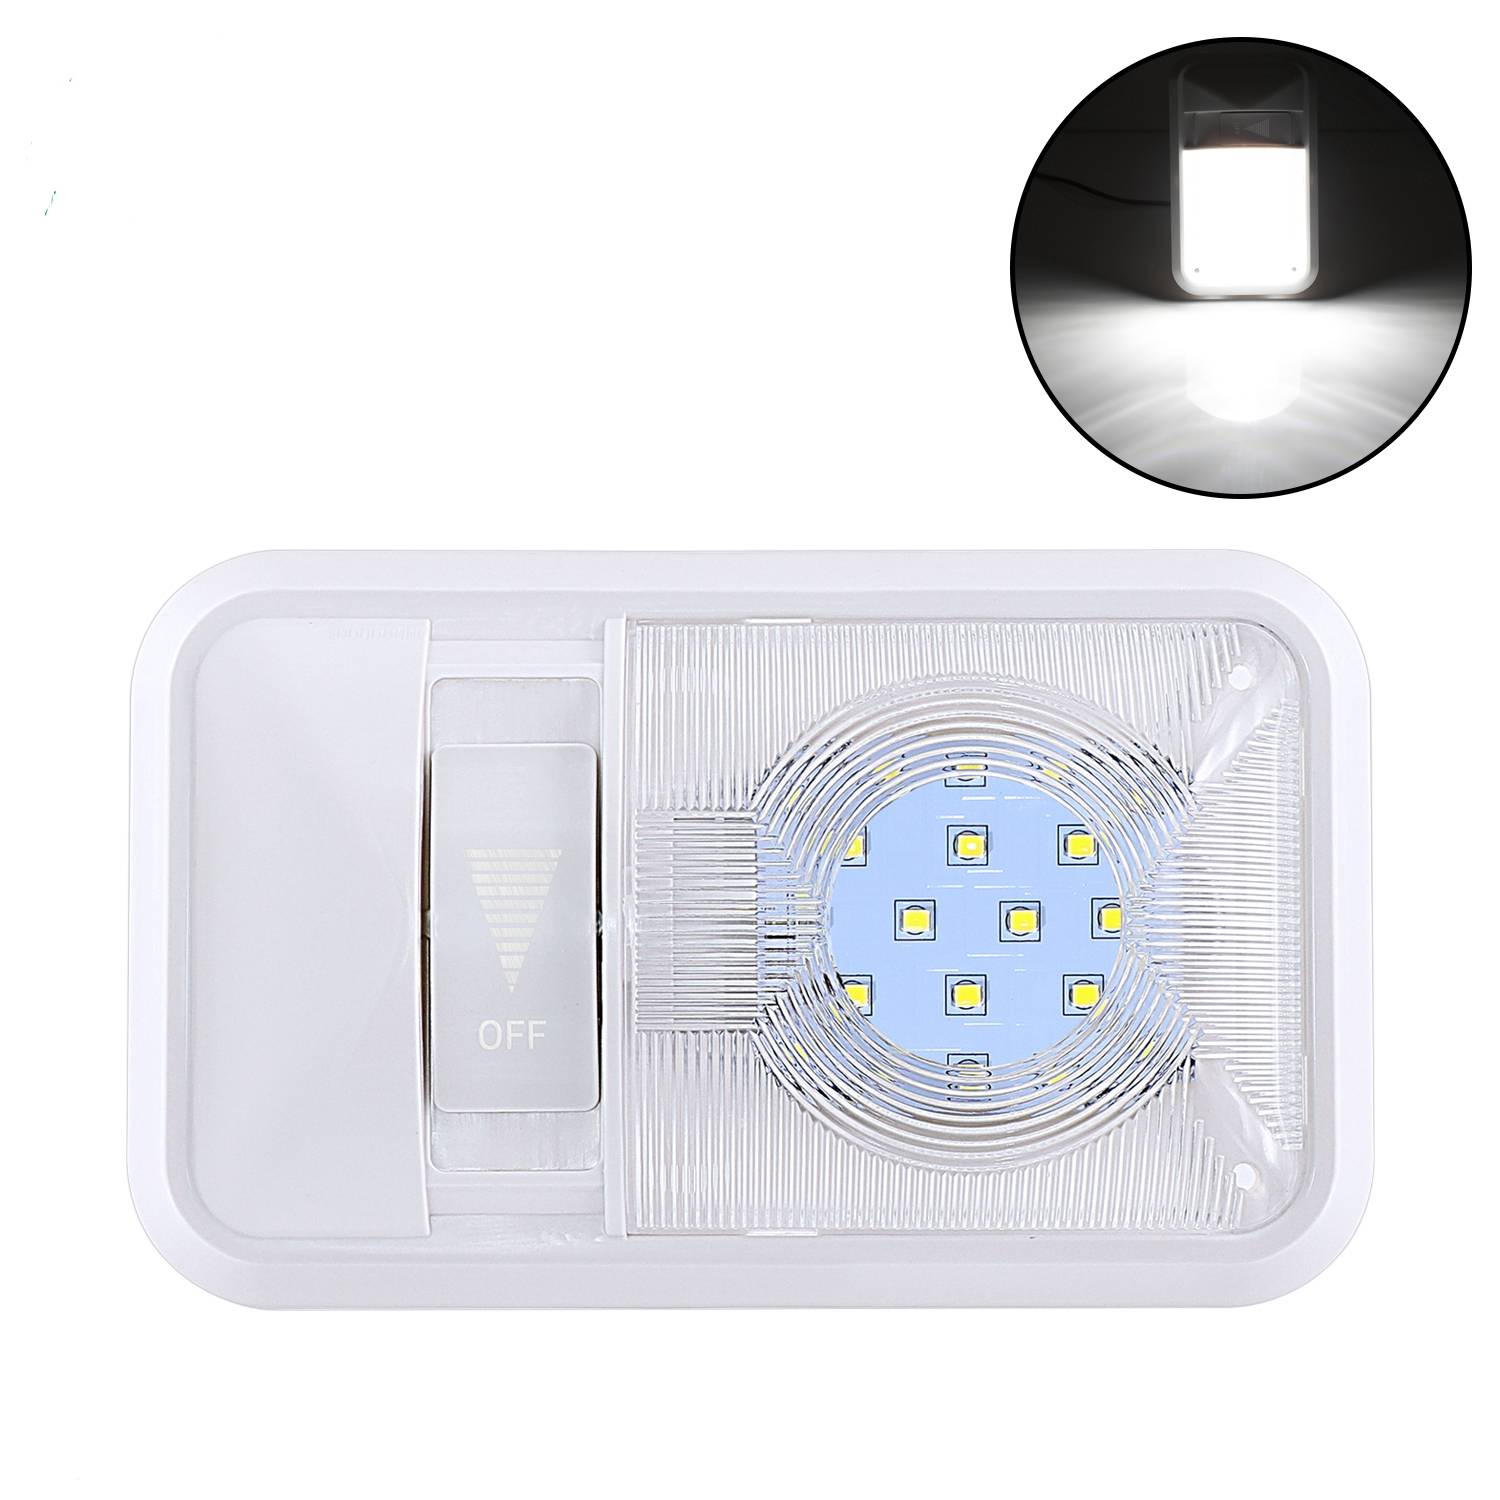 12V Led RV Dimming Ceiling Dome Light Dimming RV Interior Lighting for Trailer Camper with Dimming Switch